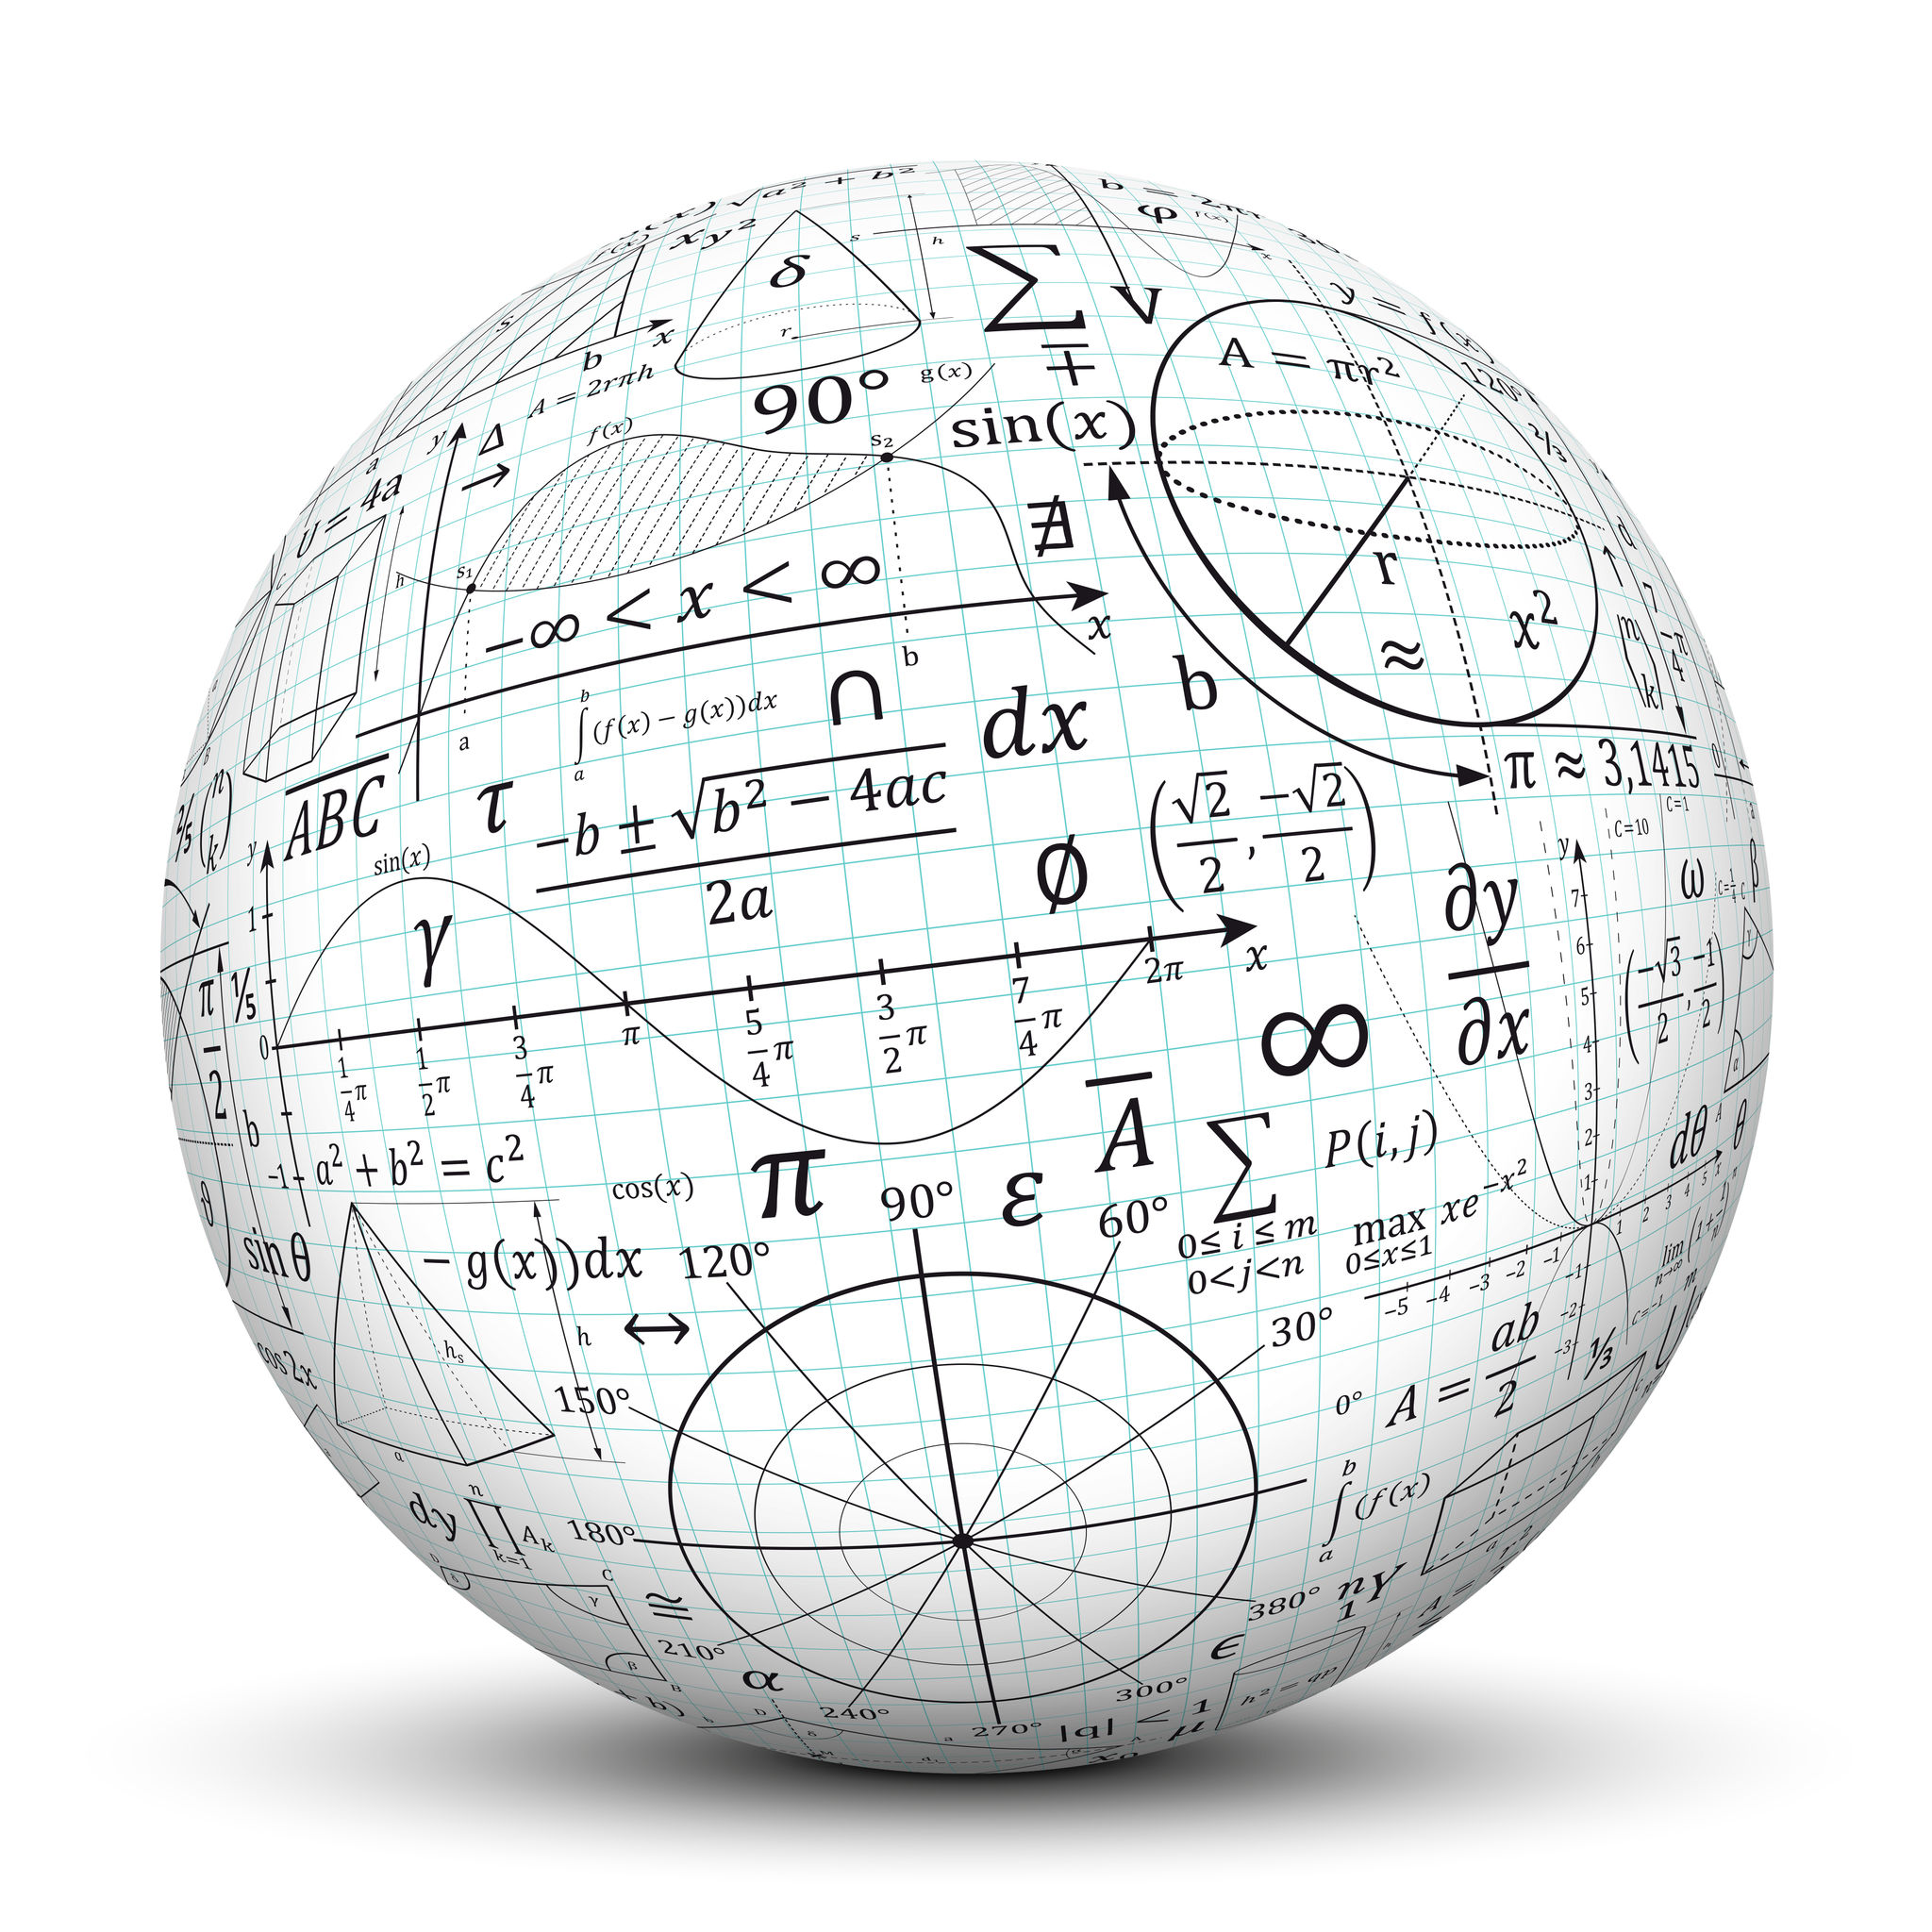 What kind of math is used in electrical engineering?